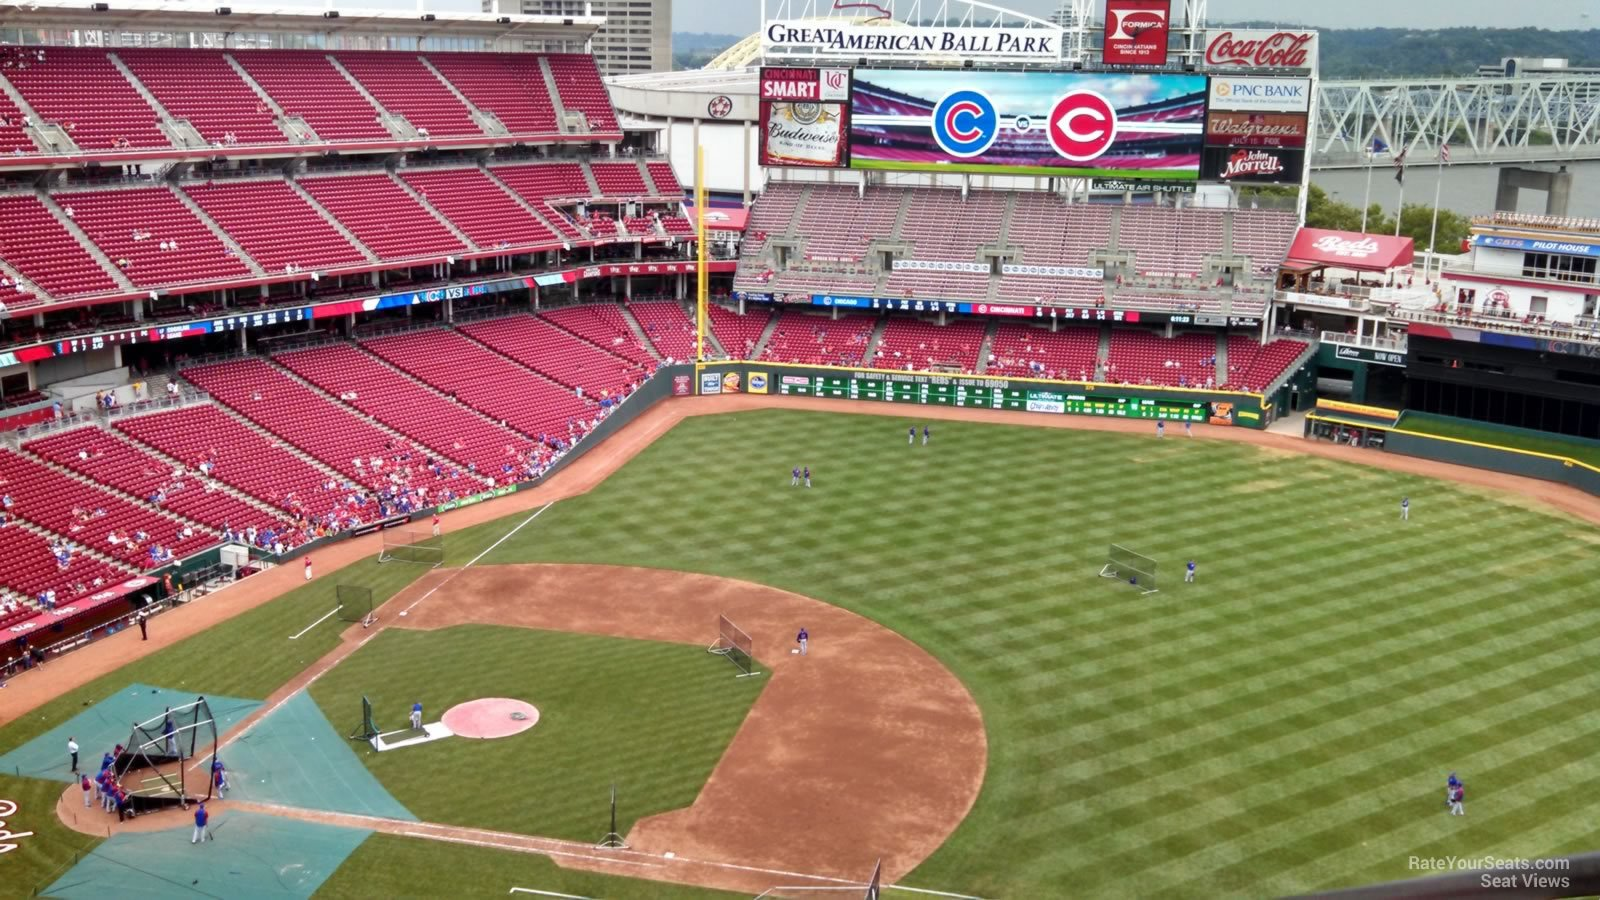 Great American Ball Park Section 531 Cincinnati Reds